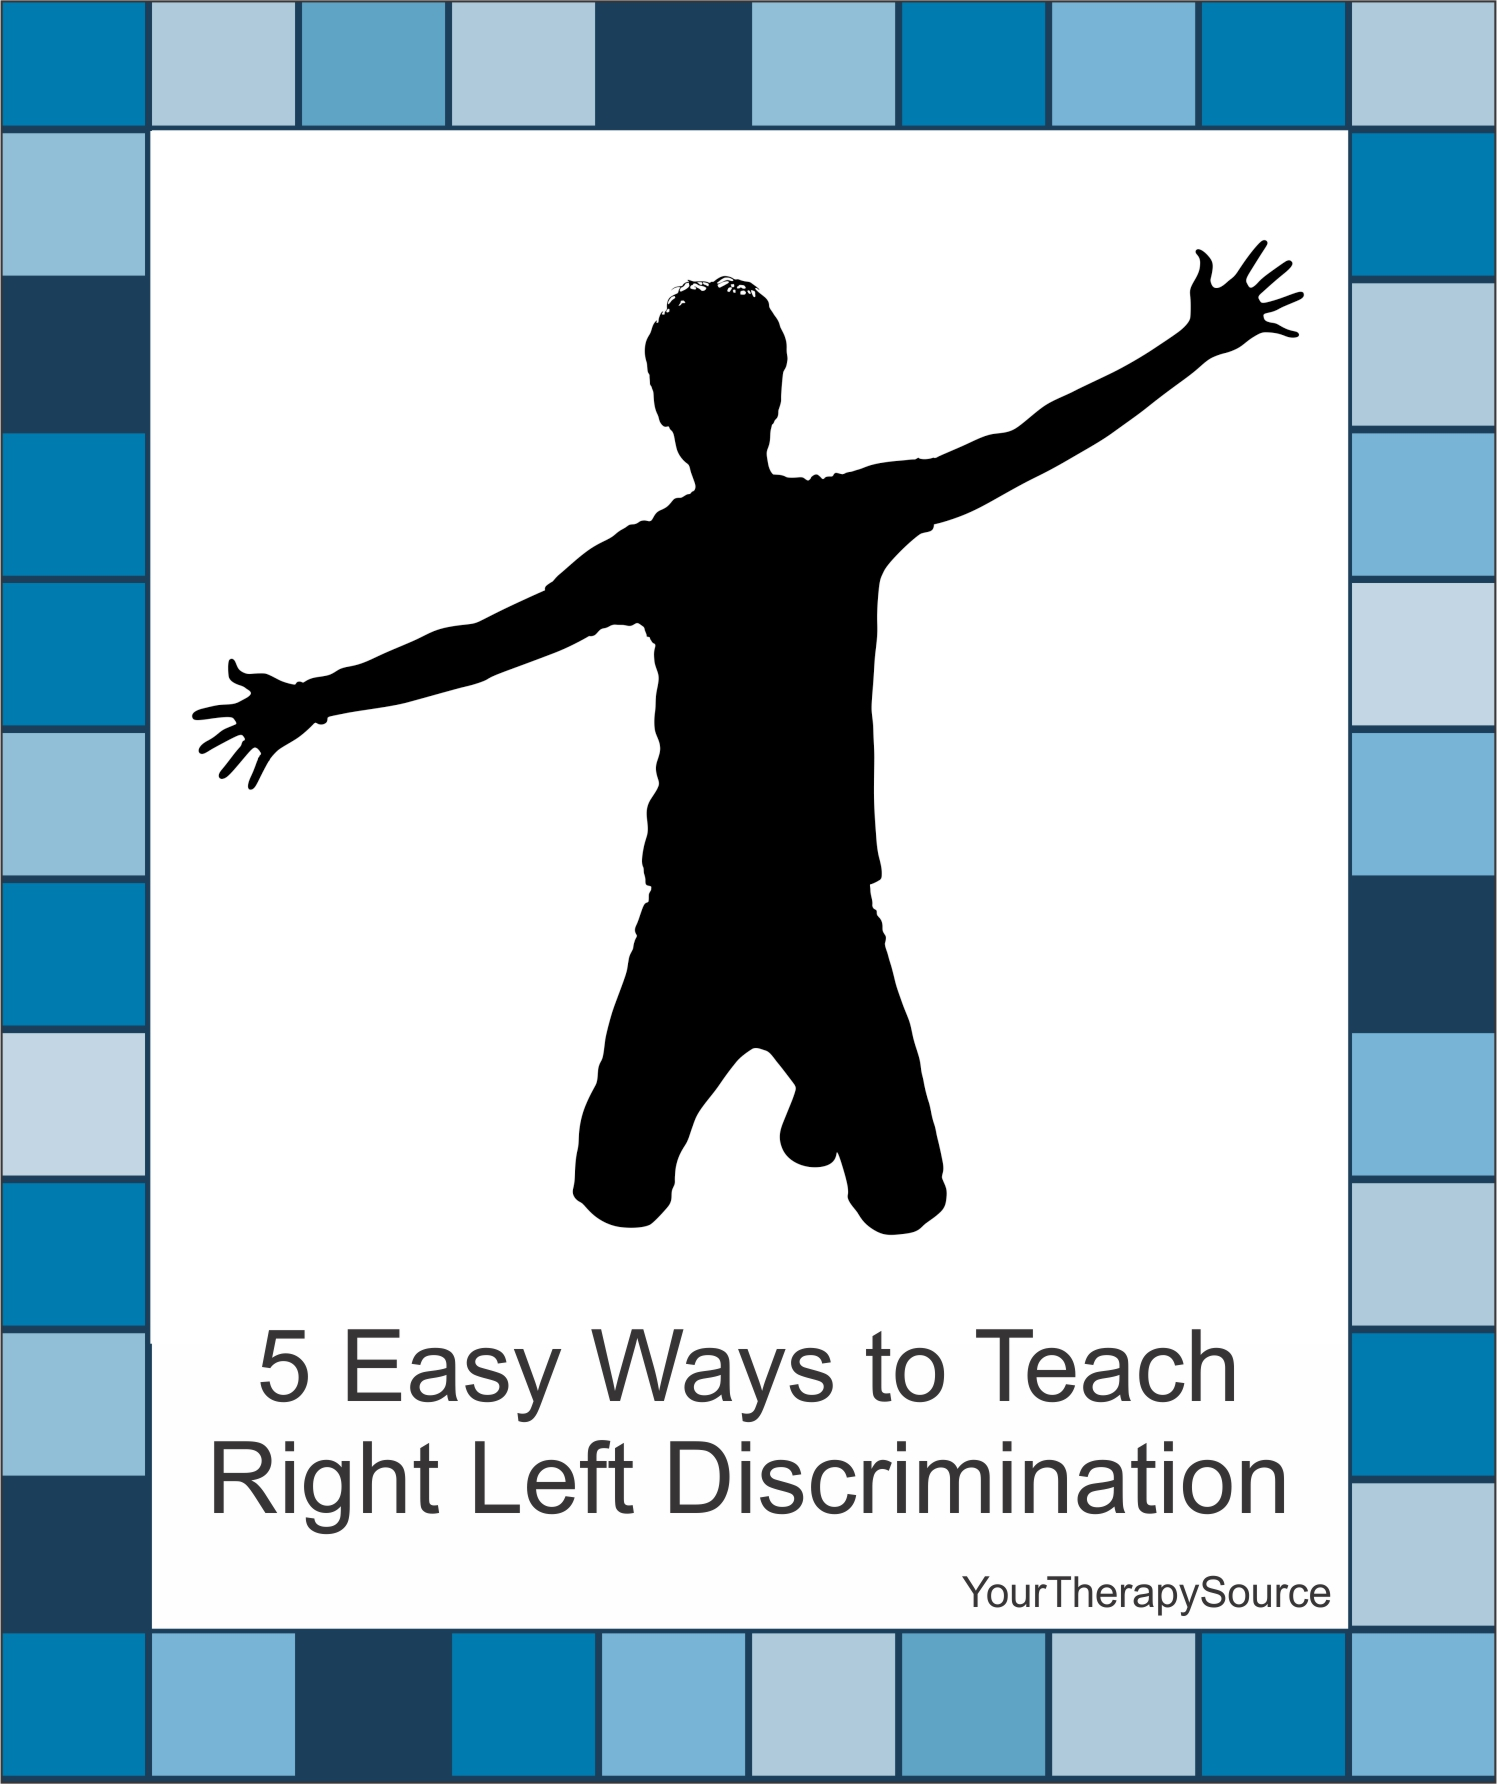 5 Easy Ways To Teach Right Left Discrimination